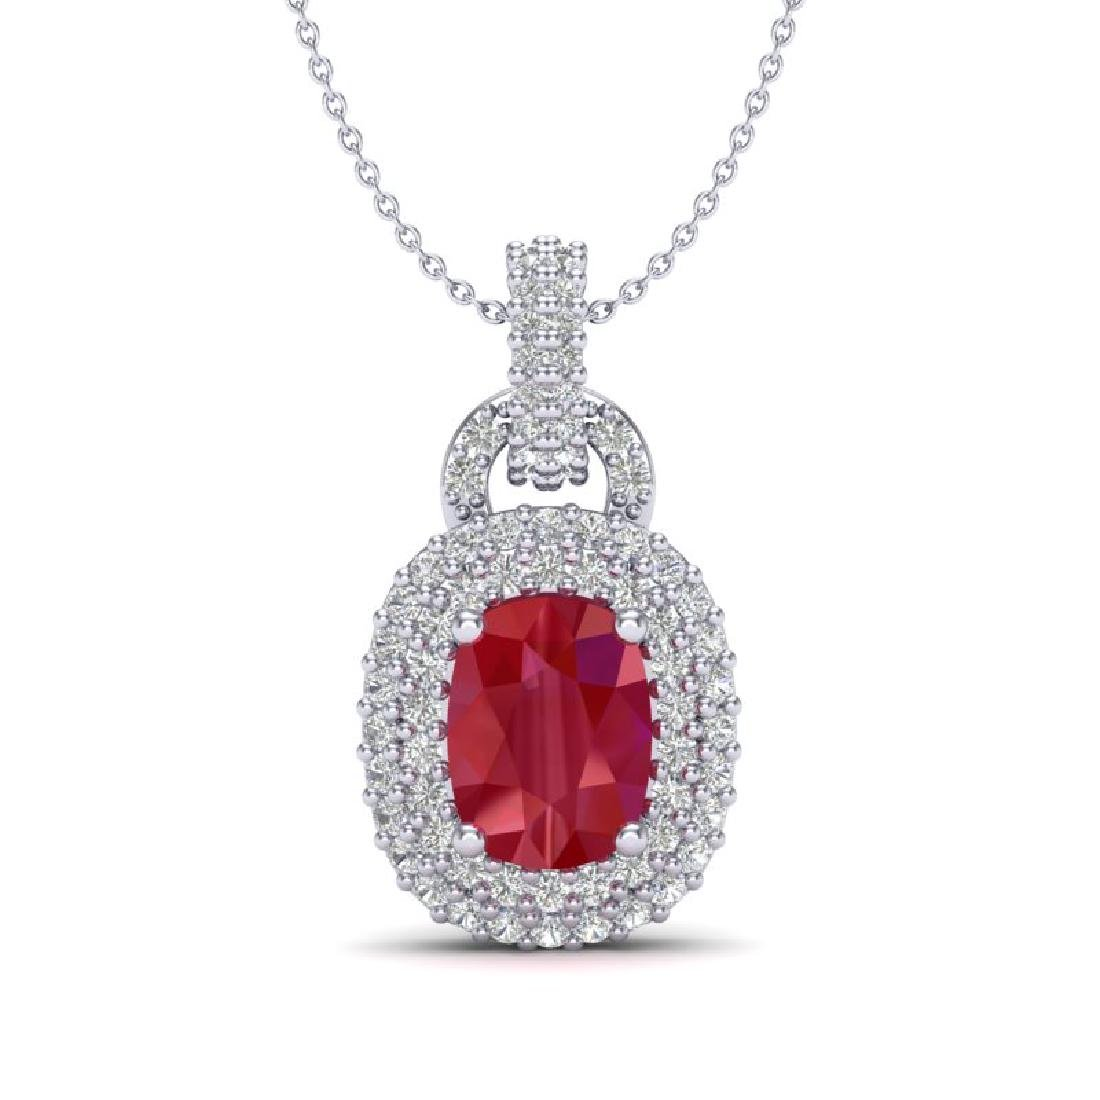 2.50 CTW Ruby And Micro Pave VS/SI Diamond Necklace